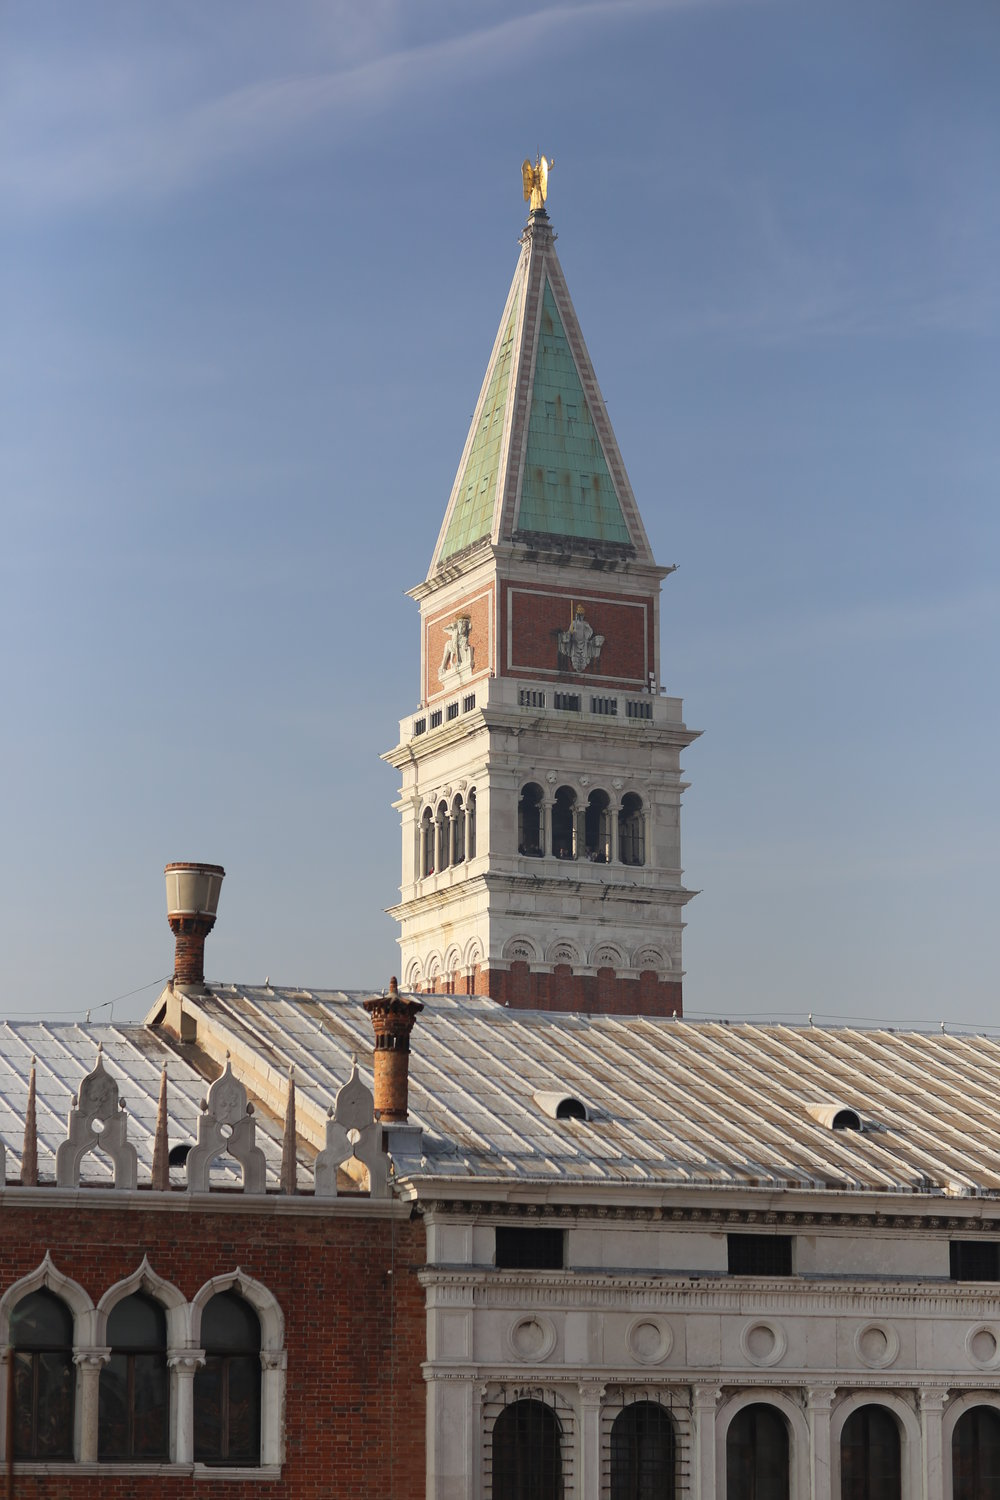 San Marco campanile from the Hotel Danieli rooftop restaurant